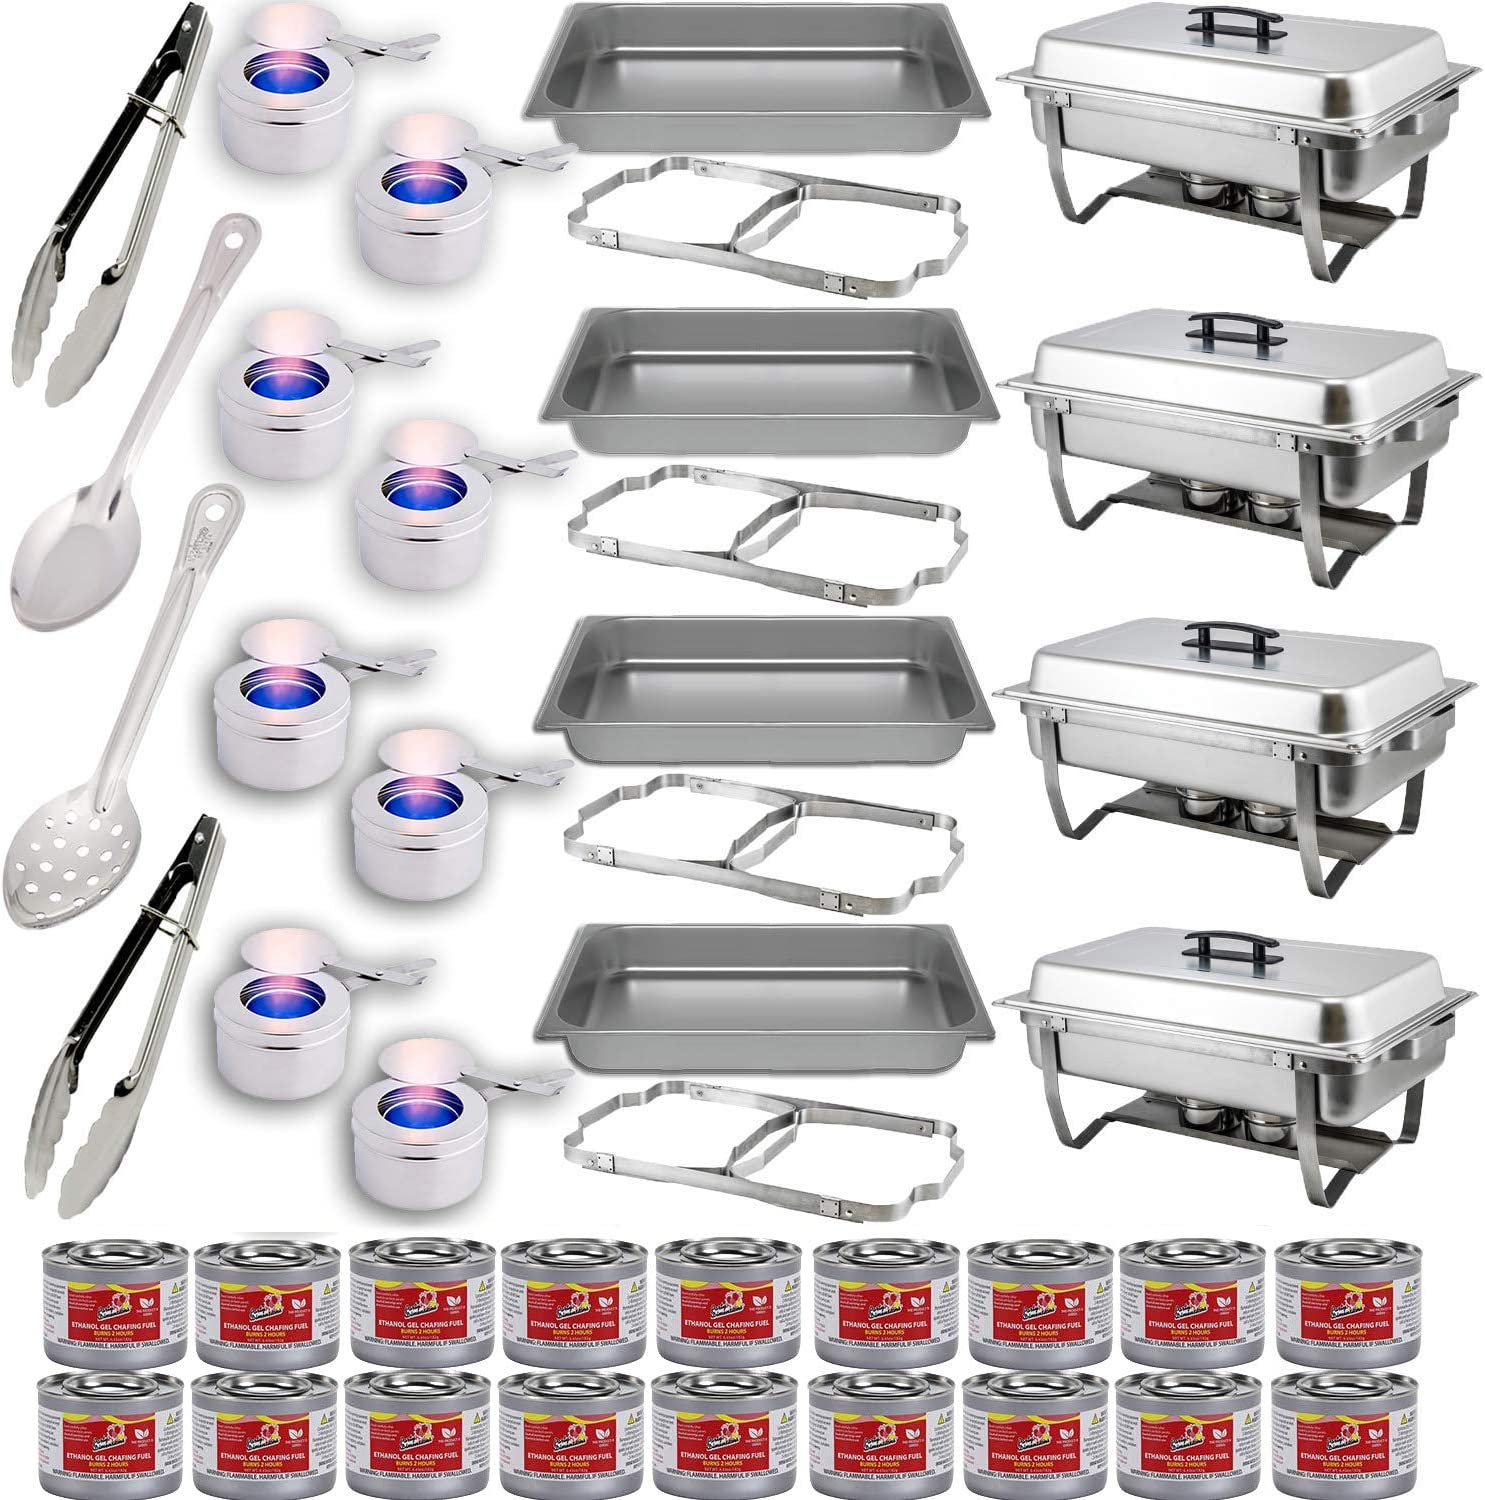 Chafing Dish Buffet Set w/Fuel — Folding Frame + Water Pan + Food Pan (8 qt) + 8 Fuel Holders + 18 Fuel Cans + 4 Serving Utensils (15